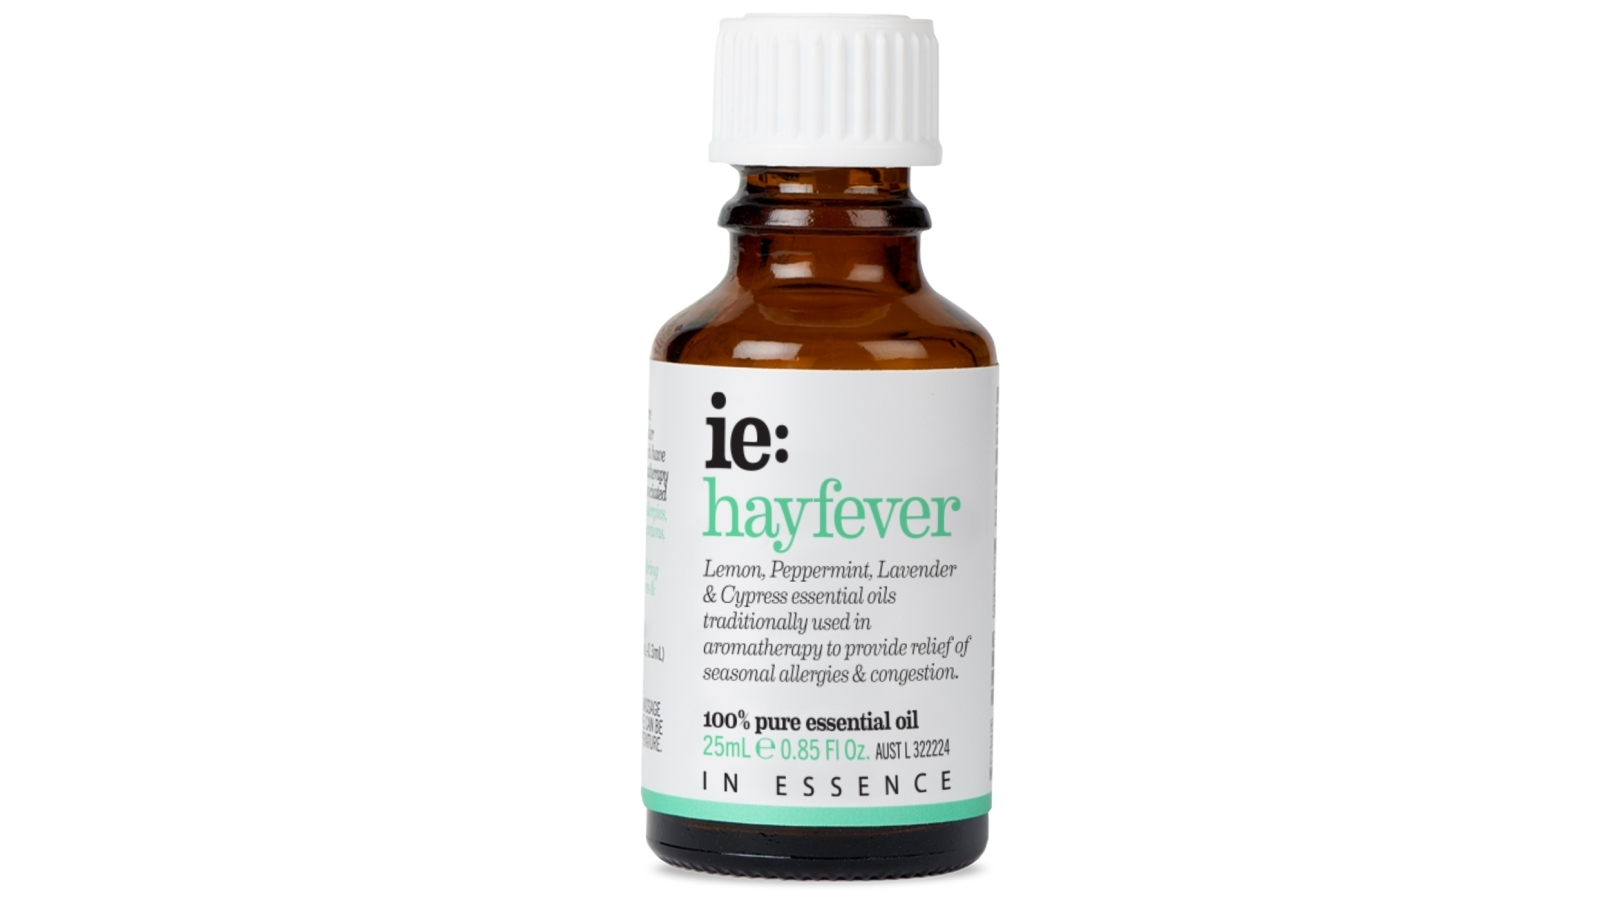 Image of In Essence 25ml Hayfever Essential Oil Blend